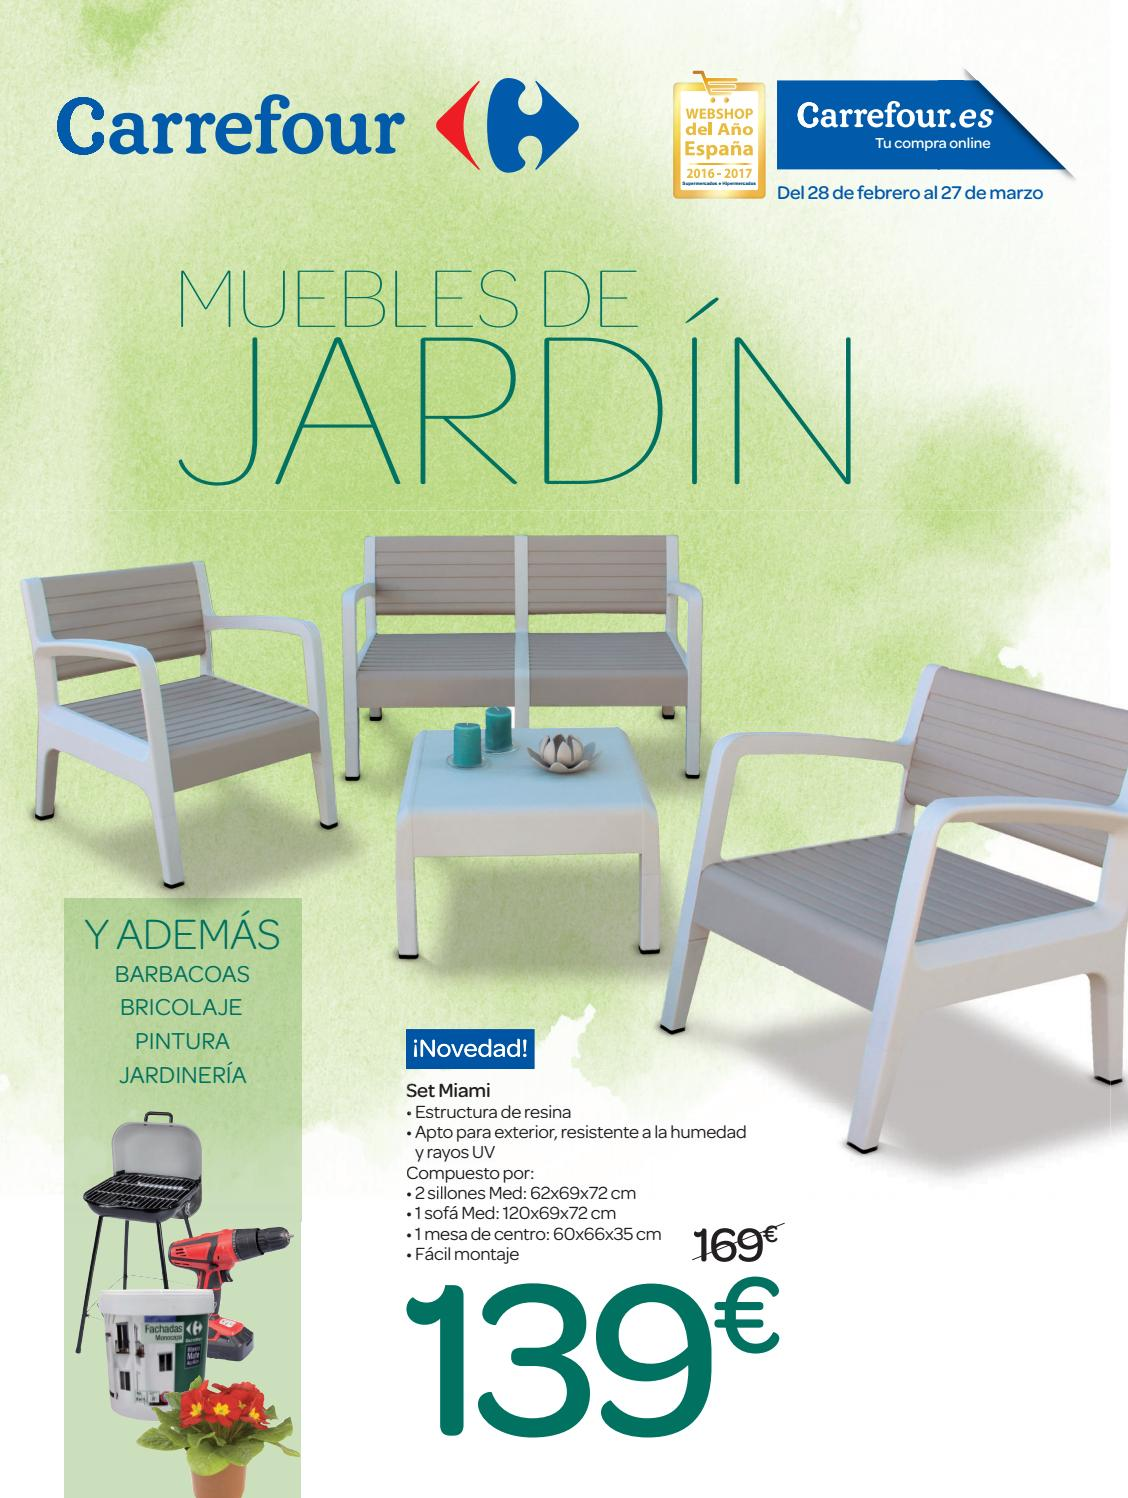 Muebles de jardin carrefour by ofertas supermercados issuu for Ofertas muebles de jardin